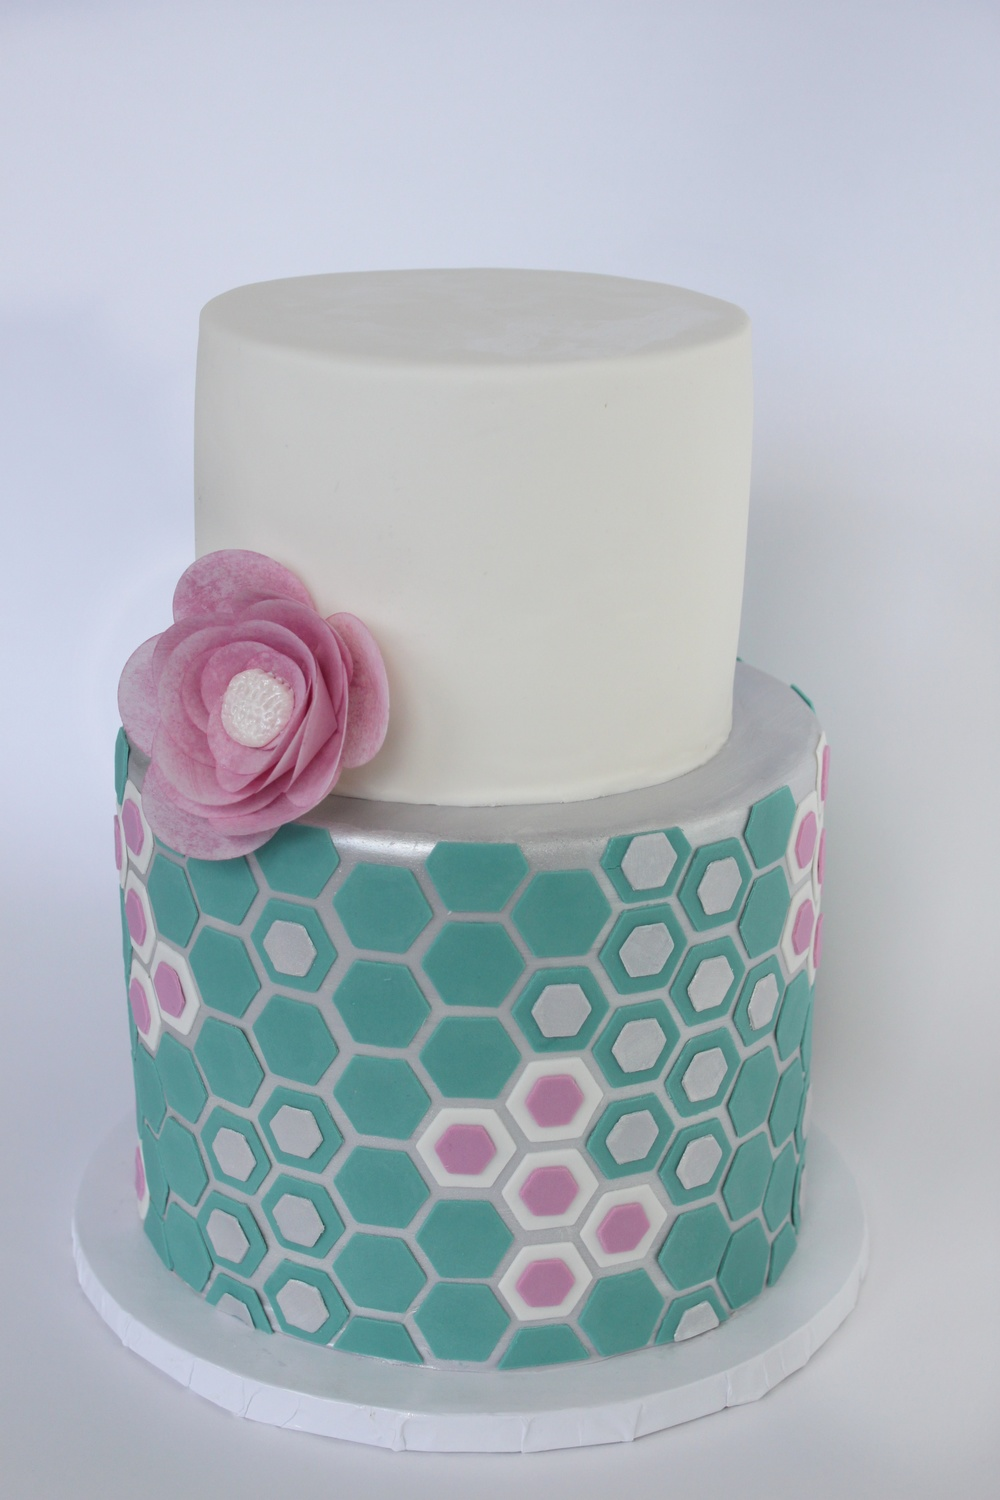 Honeycomb Hexagon cake 9198.jpg